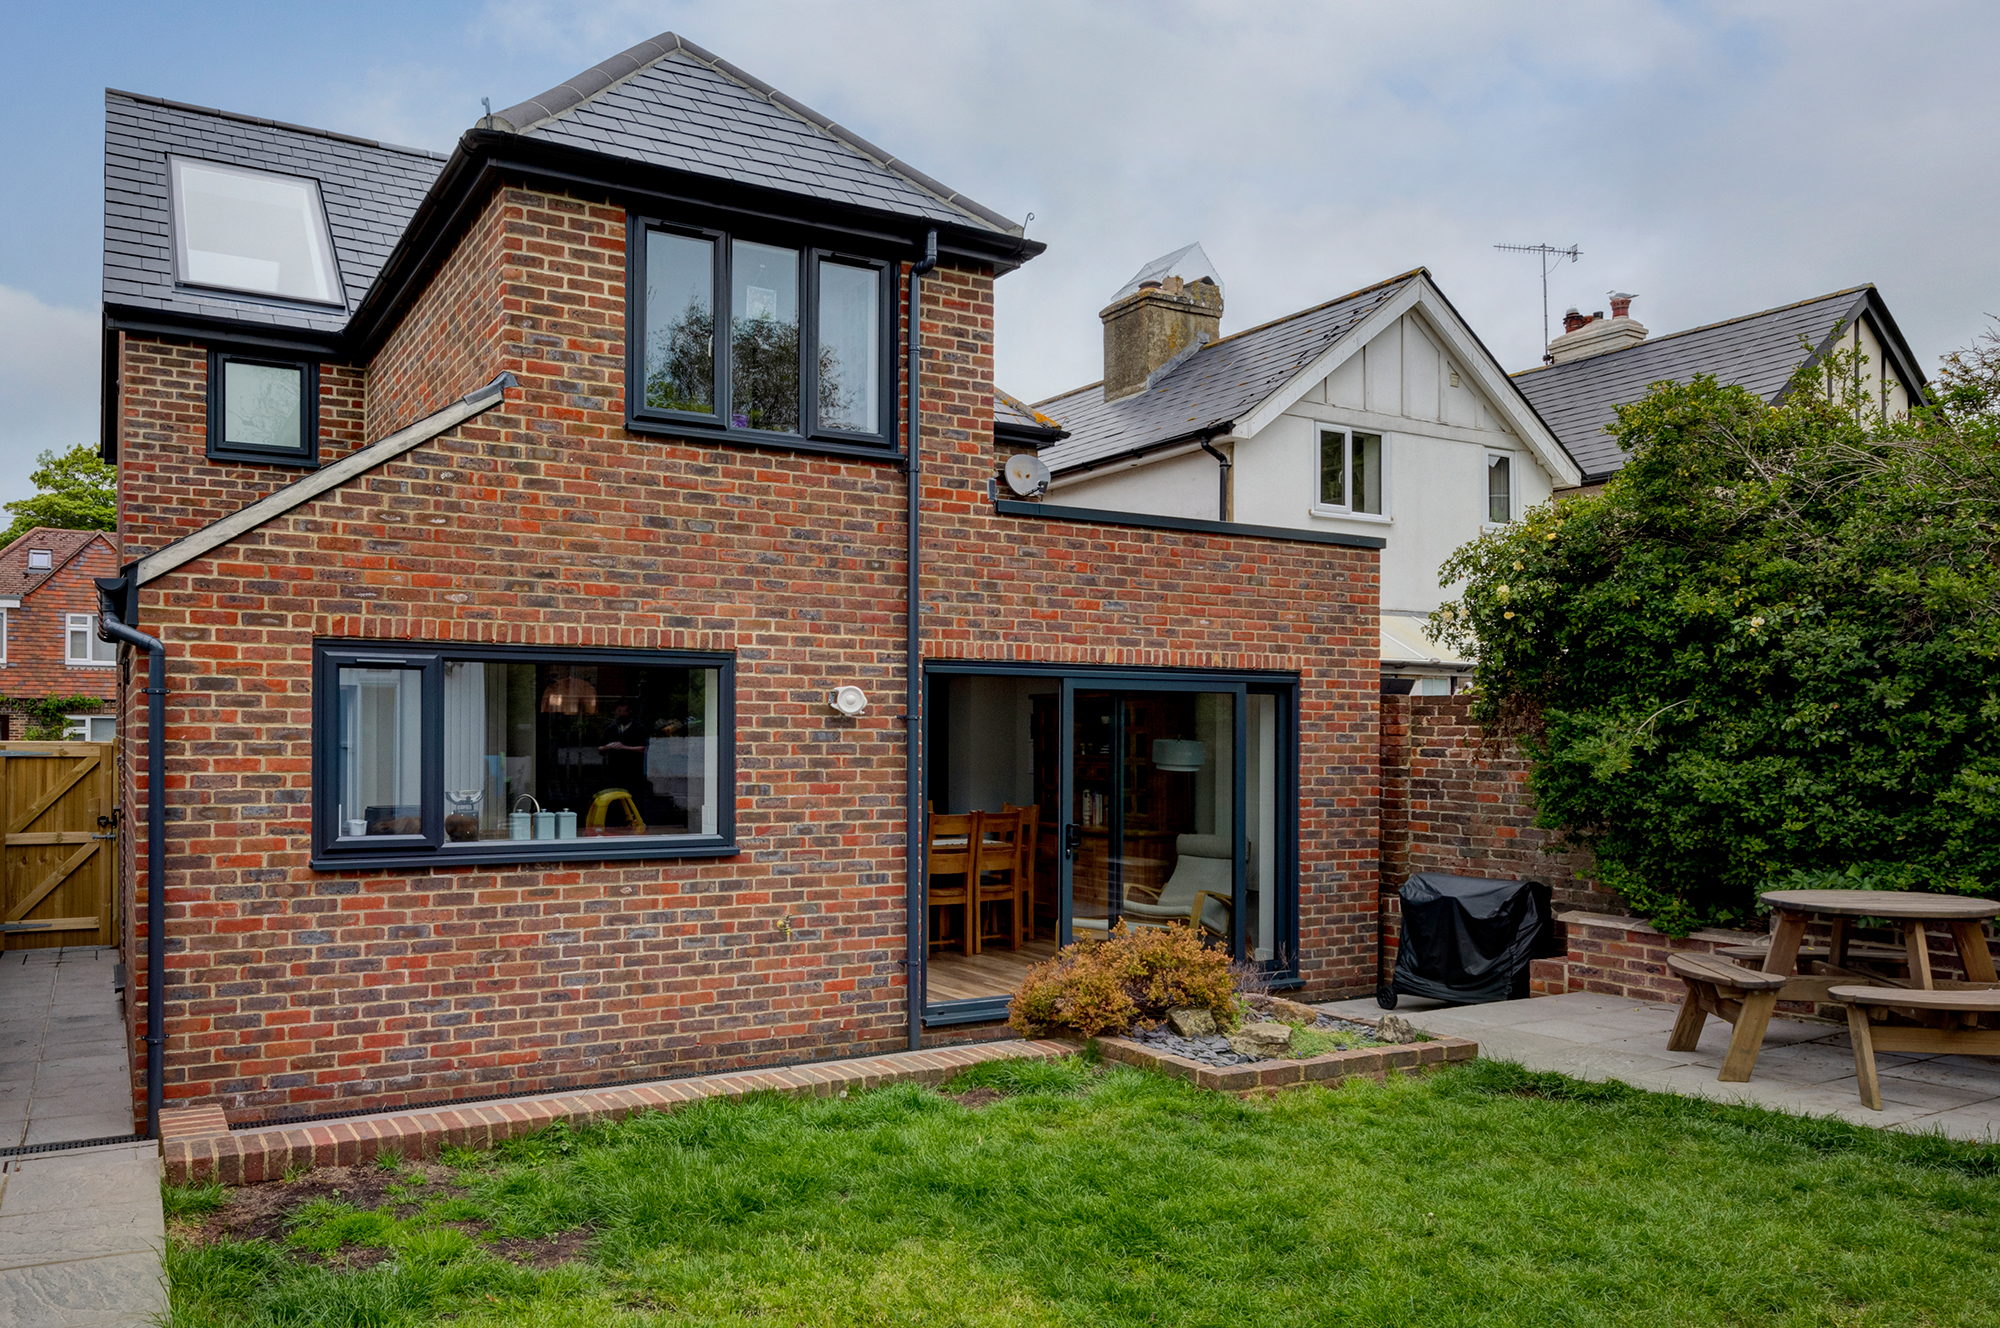 G3 Architecture Seaford Extension 1 2000_0005_G3 Architecture Seaford Extension 1.jpg